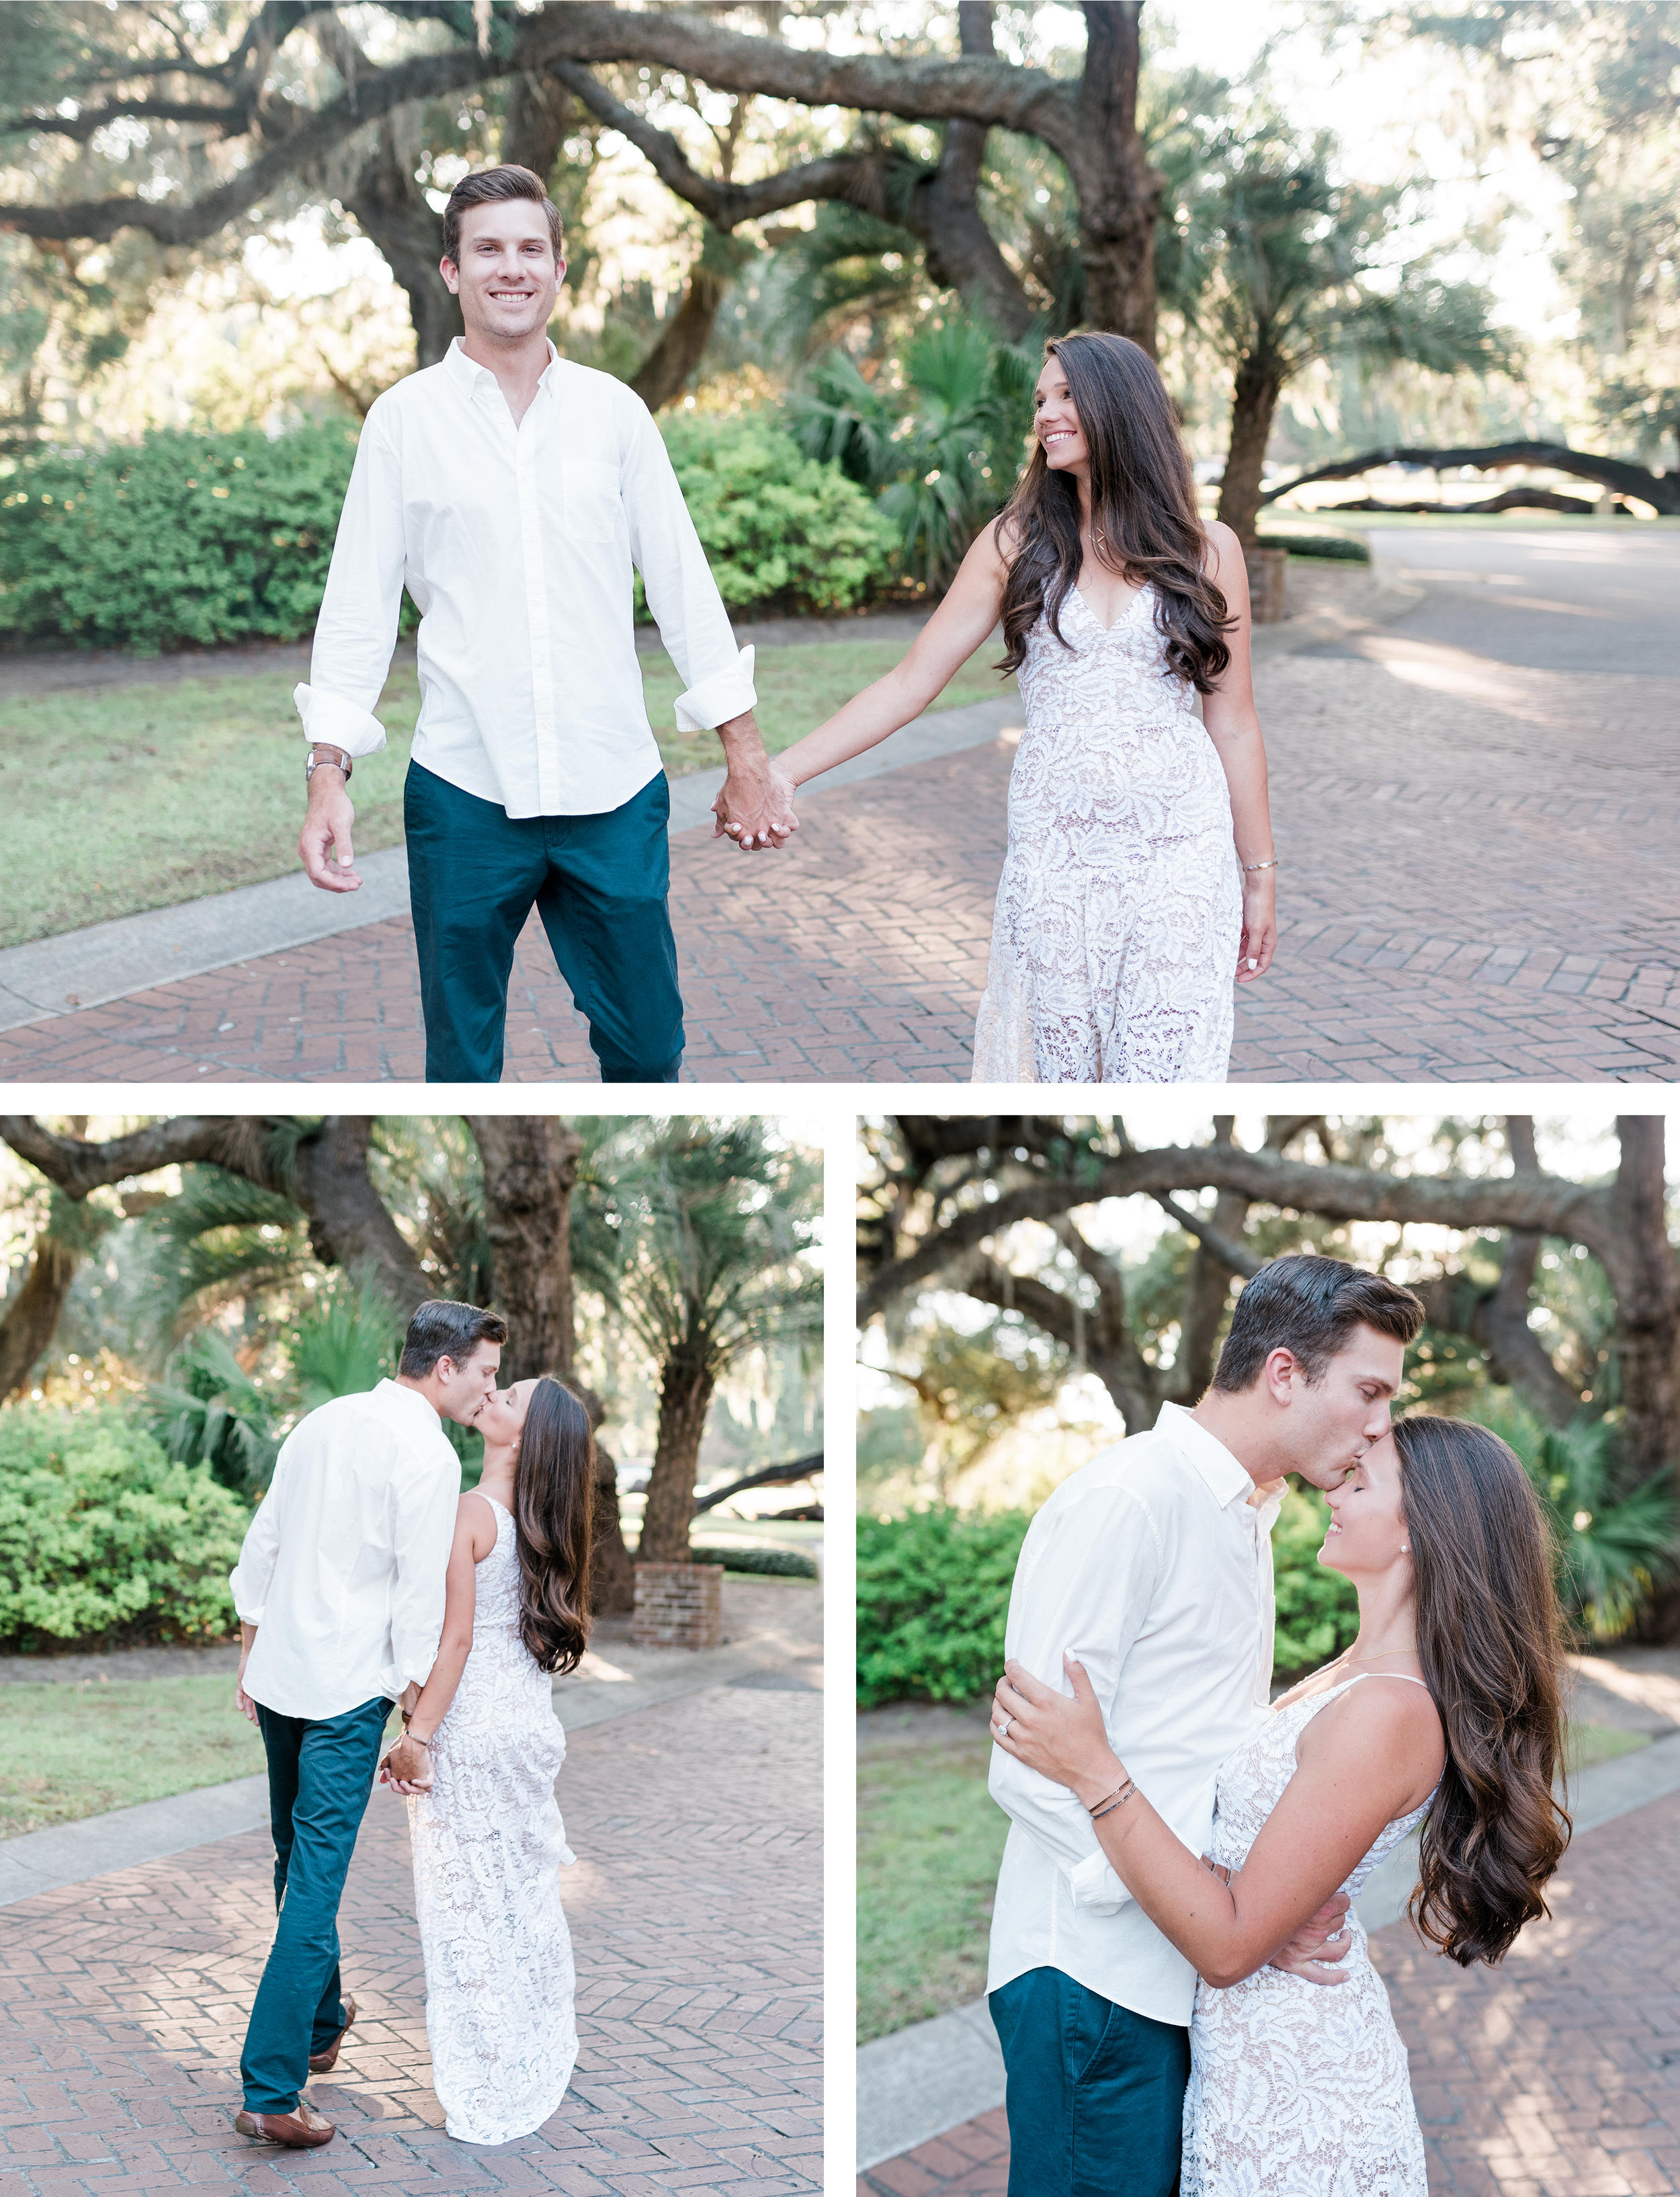 Evan Haley Engagement_Pawleys Island SC_Kristen Paige Photography_Gallery 1.png